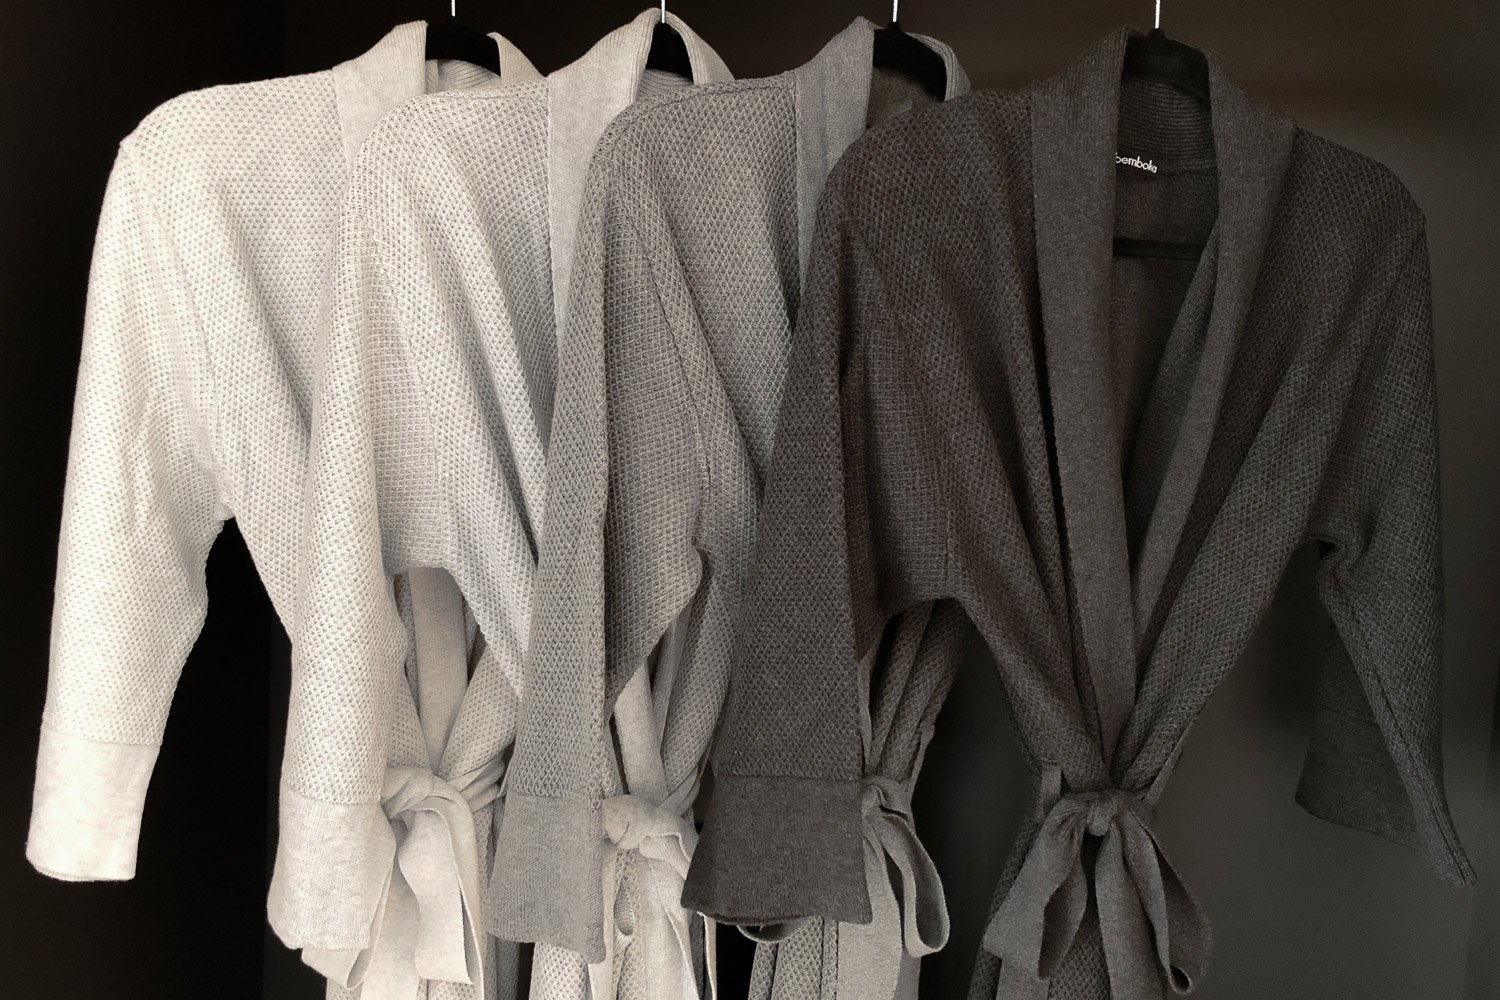 Four cotton bathrobes in shades of white and grey colours